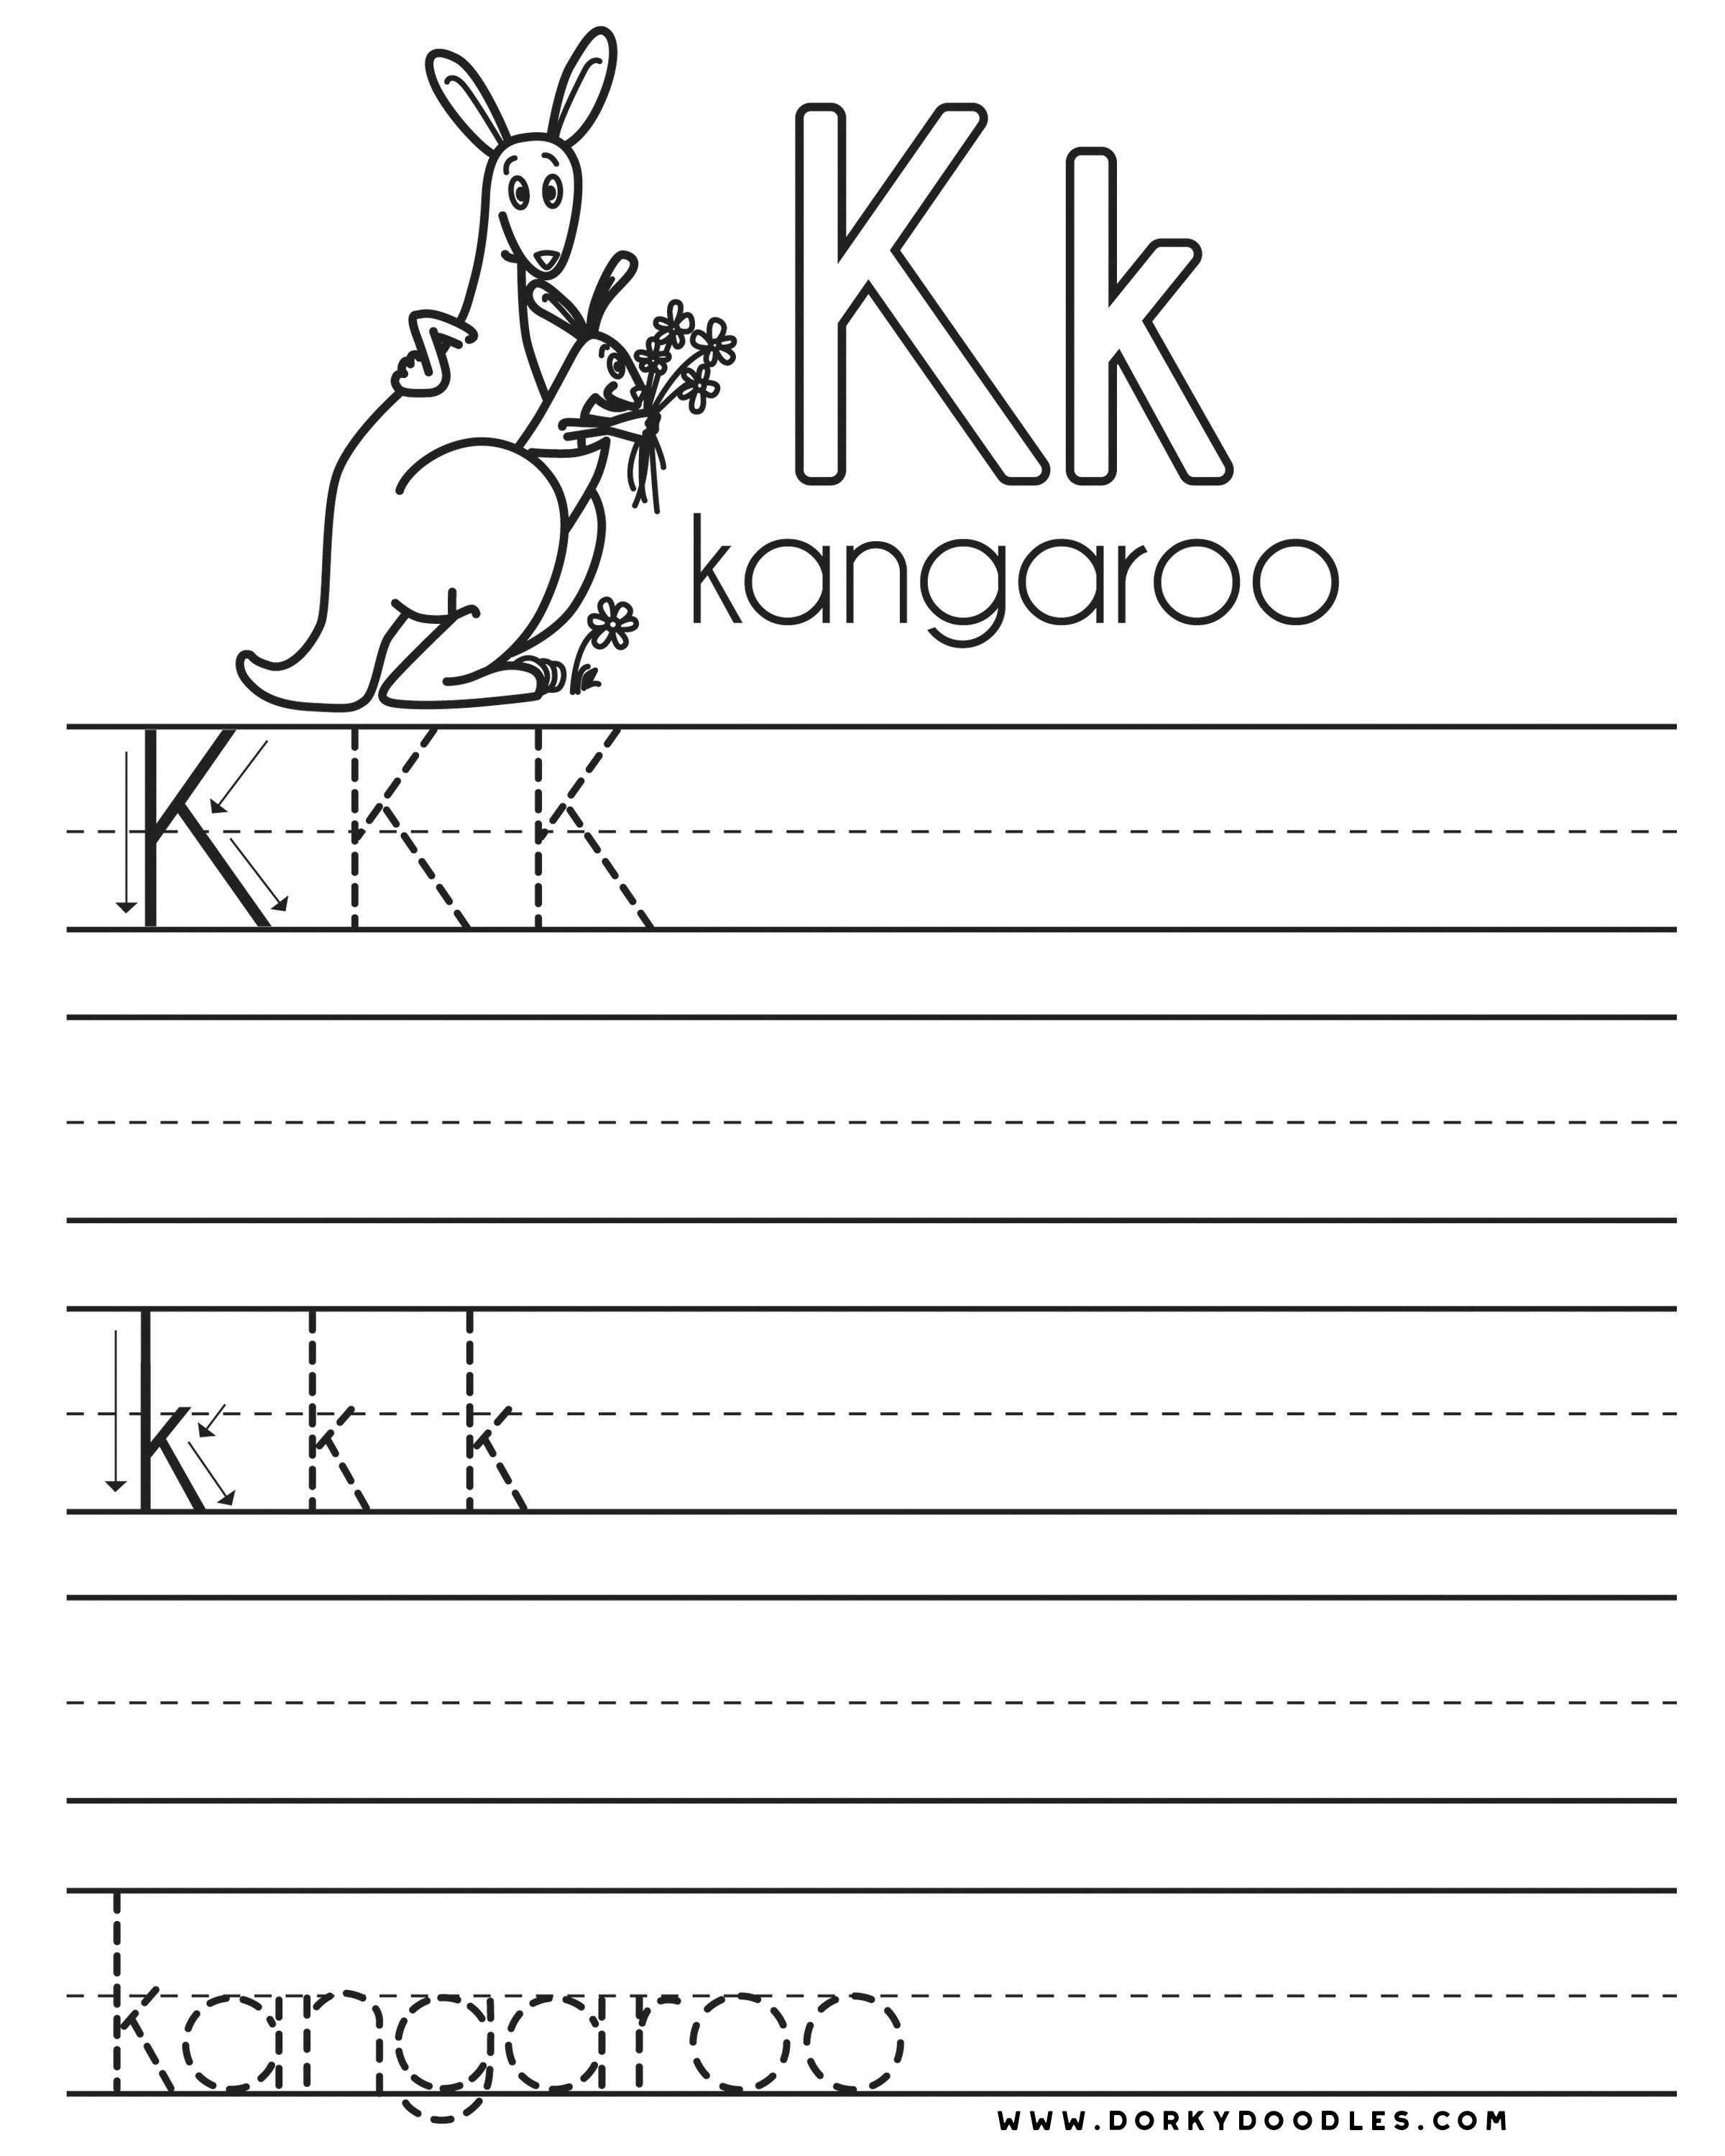 worksheet K Worksheets letter practice k worksheets dorky doodles and right click this image to download save the free coloring page